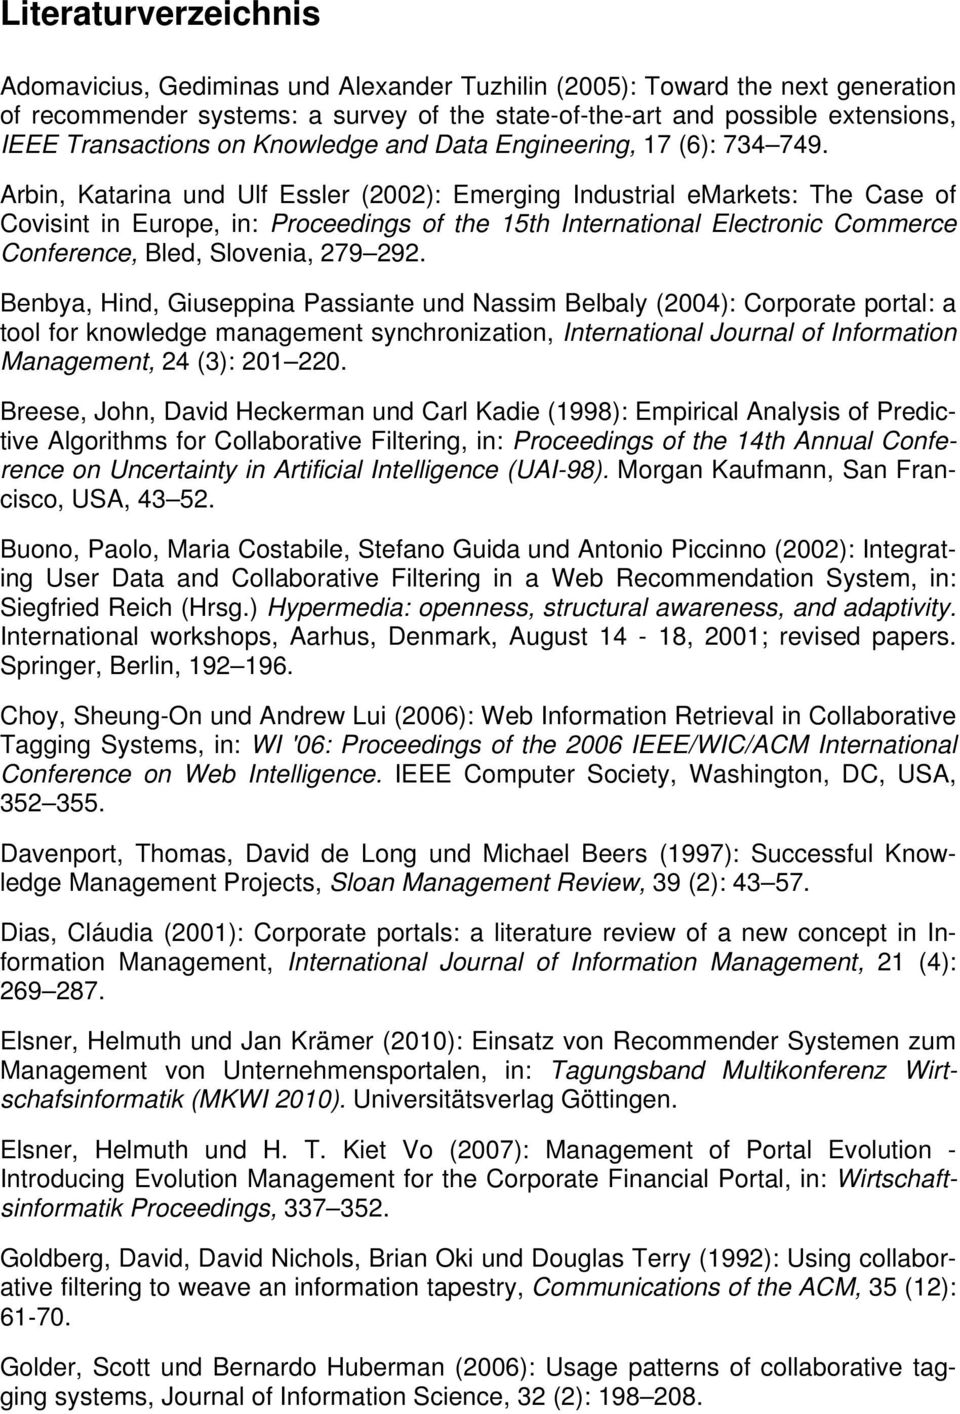 Arbin, Katarina und Ulf Essler (2002): Emerging Industrial emarkets: The Case of Covisint in Europe, in: Proceedings of the 15th International Electronic Commerce Conference, Bled, Slovenia, 279 292.